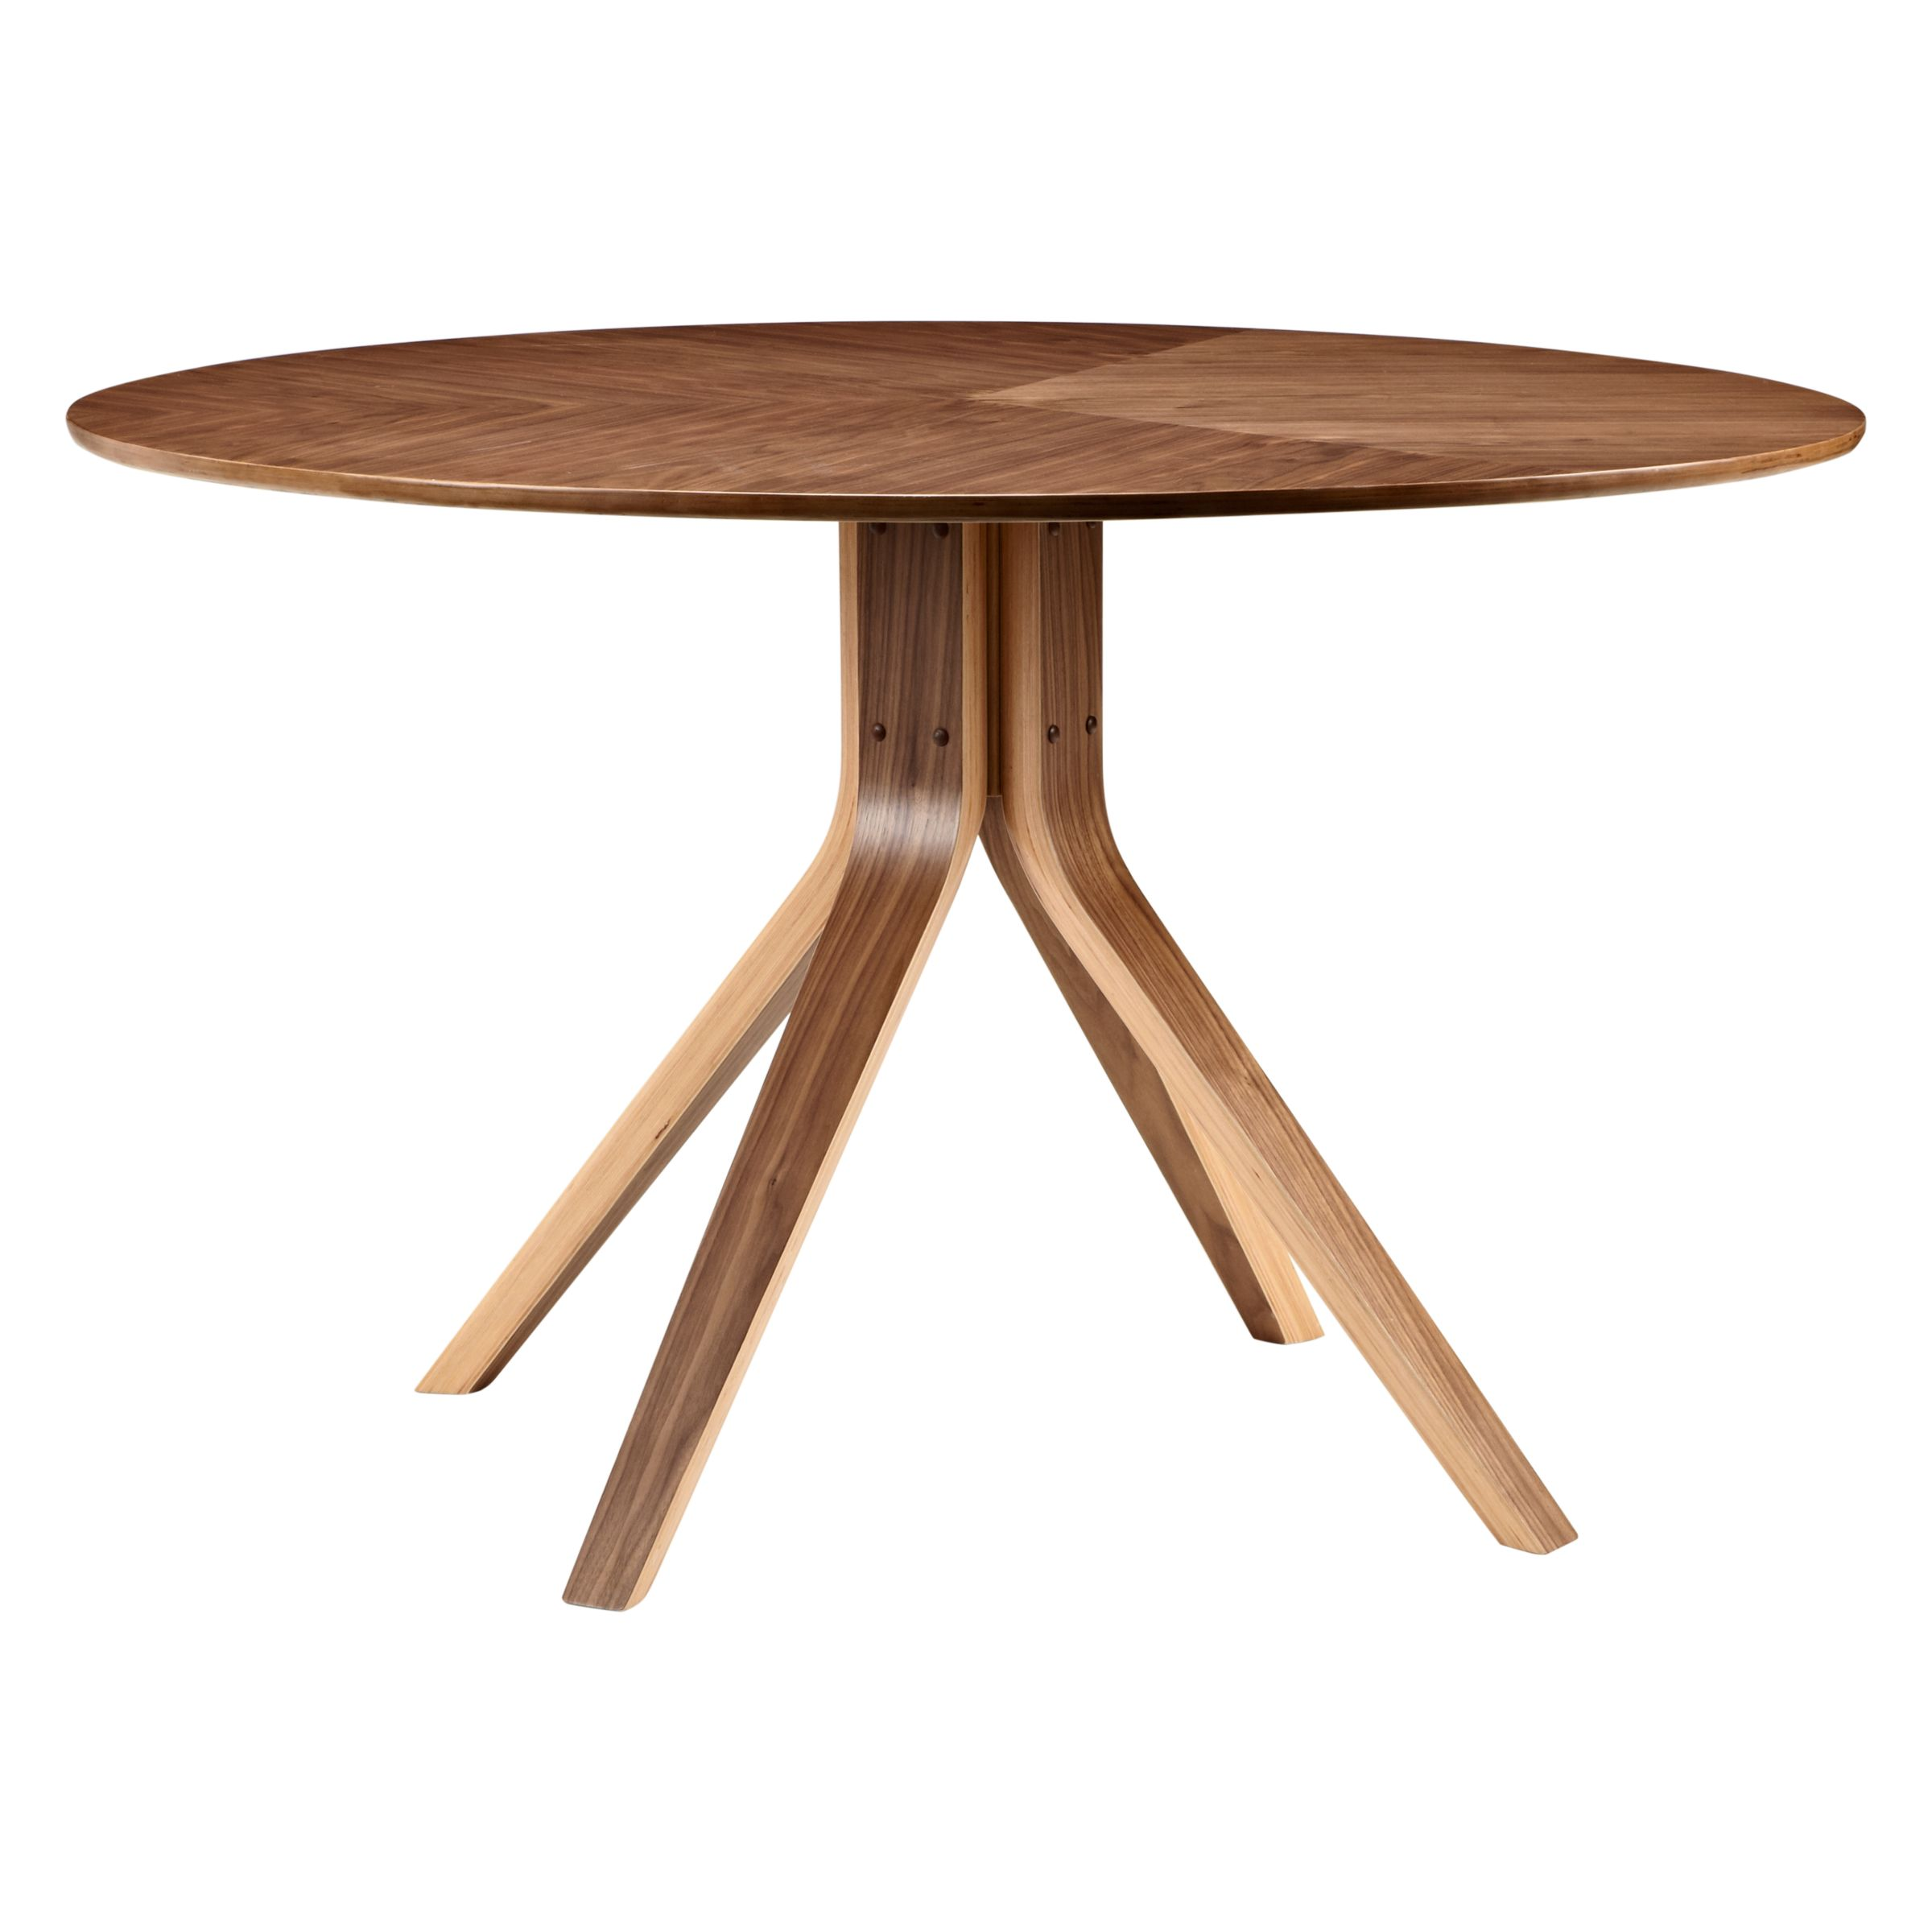 Wales & Wales for John Lewis John Lewis Radar 6 Seater Round Dining Table, Walnut